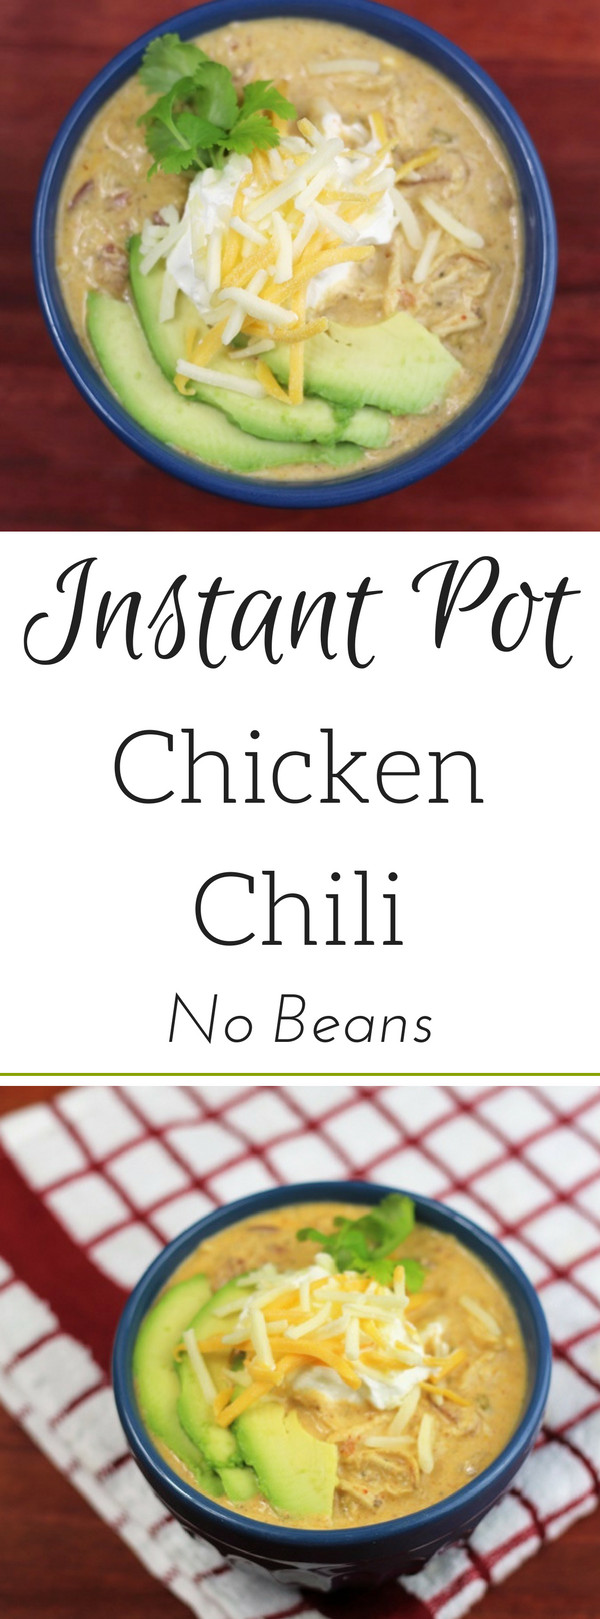 Instant Pot Keto Chicken Chili  Easy Low Carb Instant Pot Chicken Chili No Beans